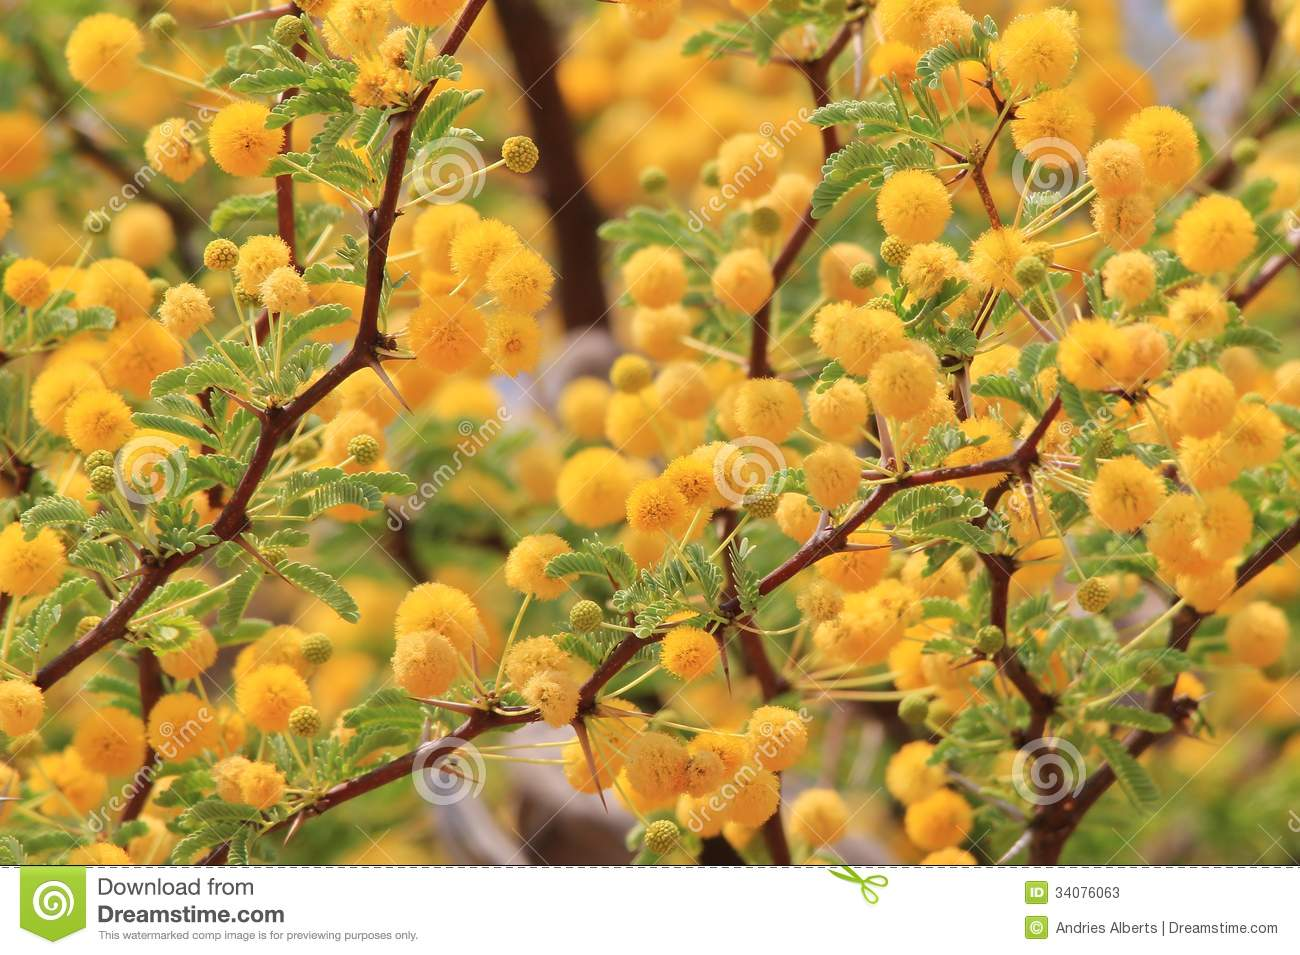 Camel Thorn Blossoms Wild Flower Background From Africa Golden Yellow Beauty Stock Photos